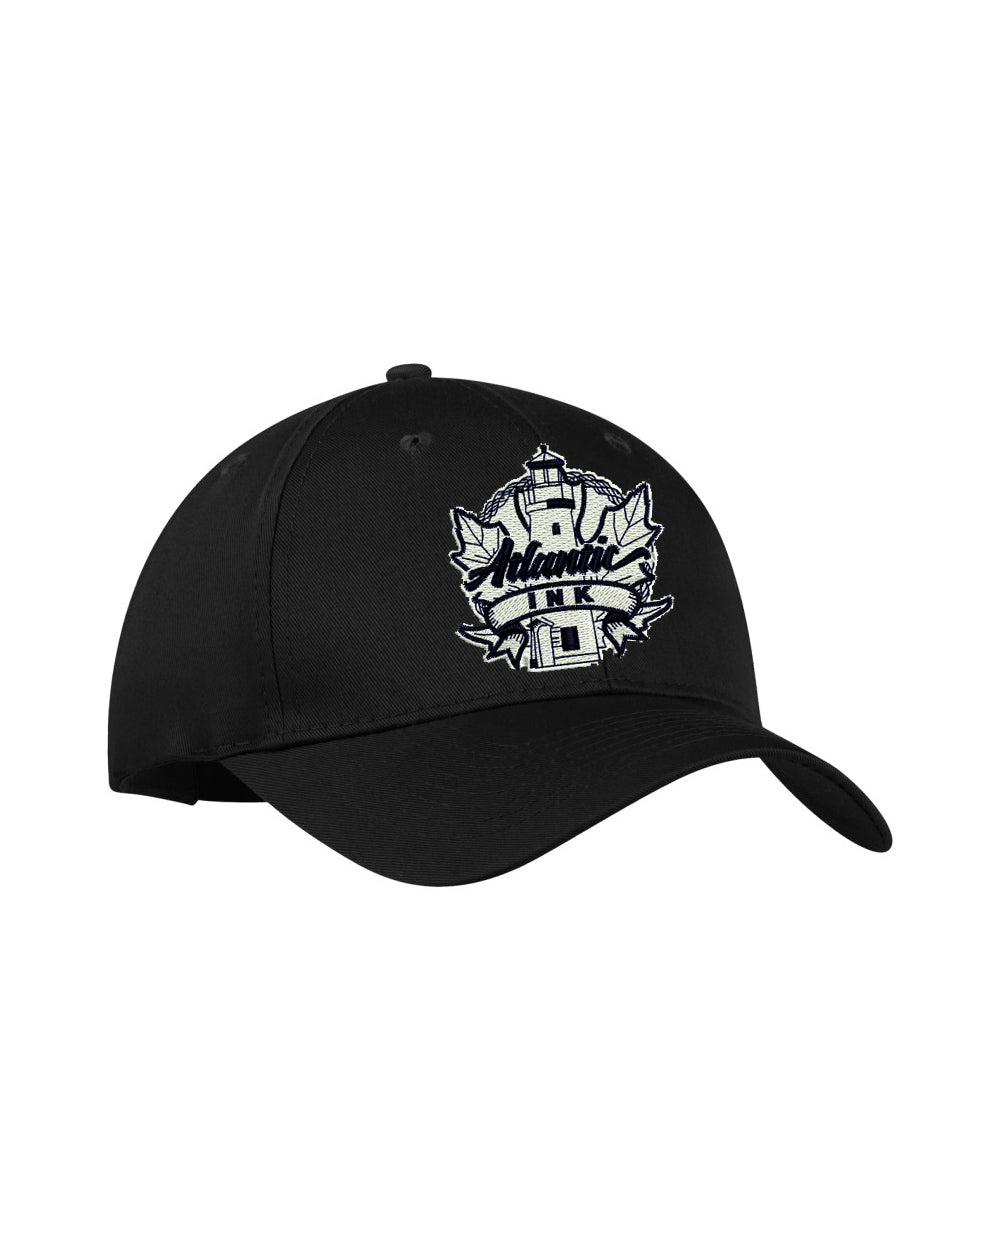 Embroidered Hat Black